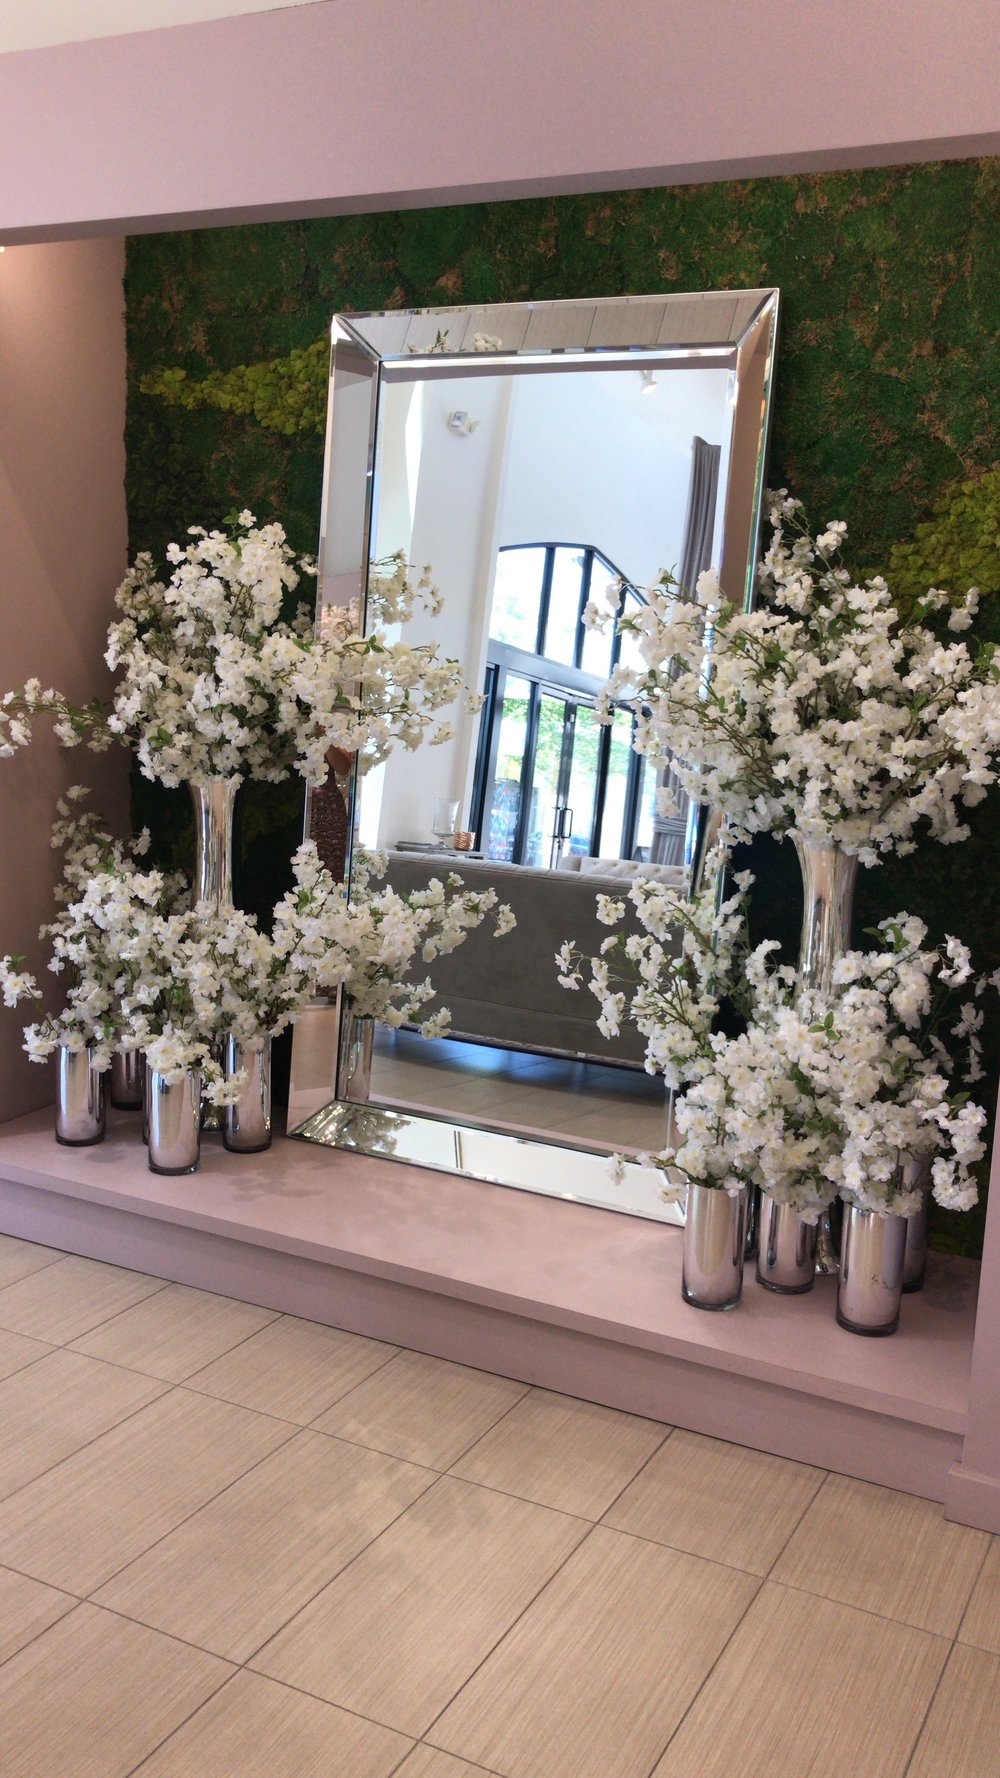 Large mirror against a hedge all with white floral accents.